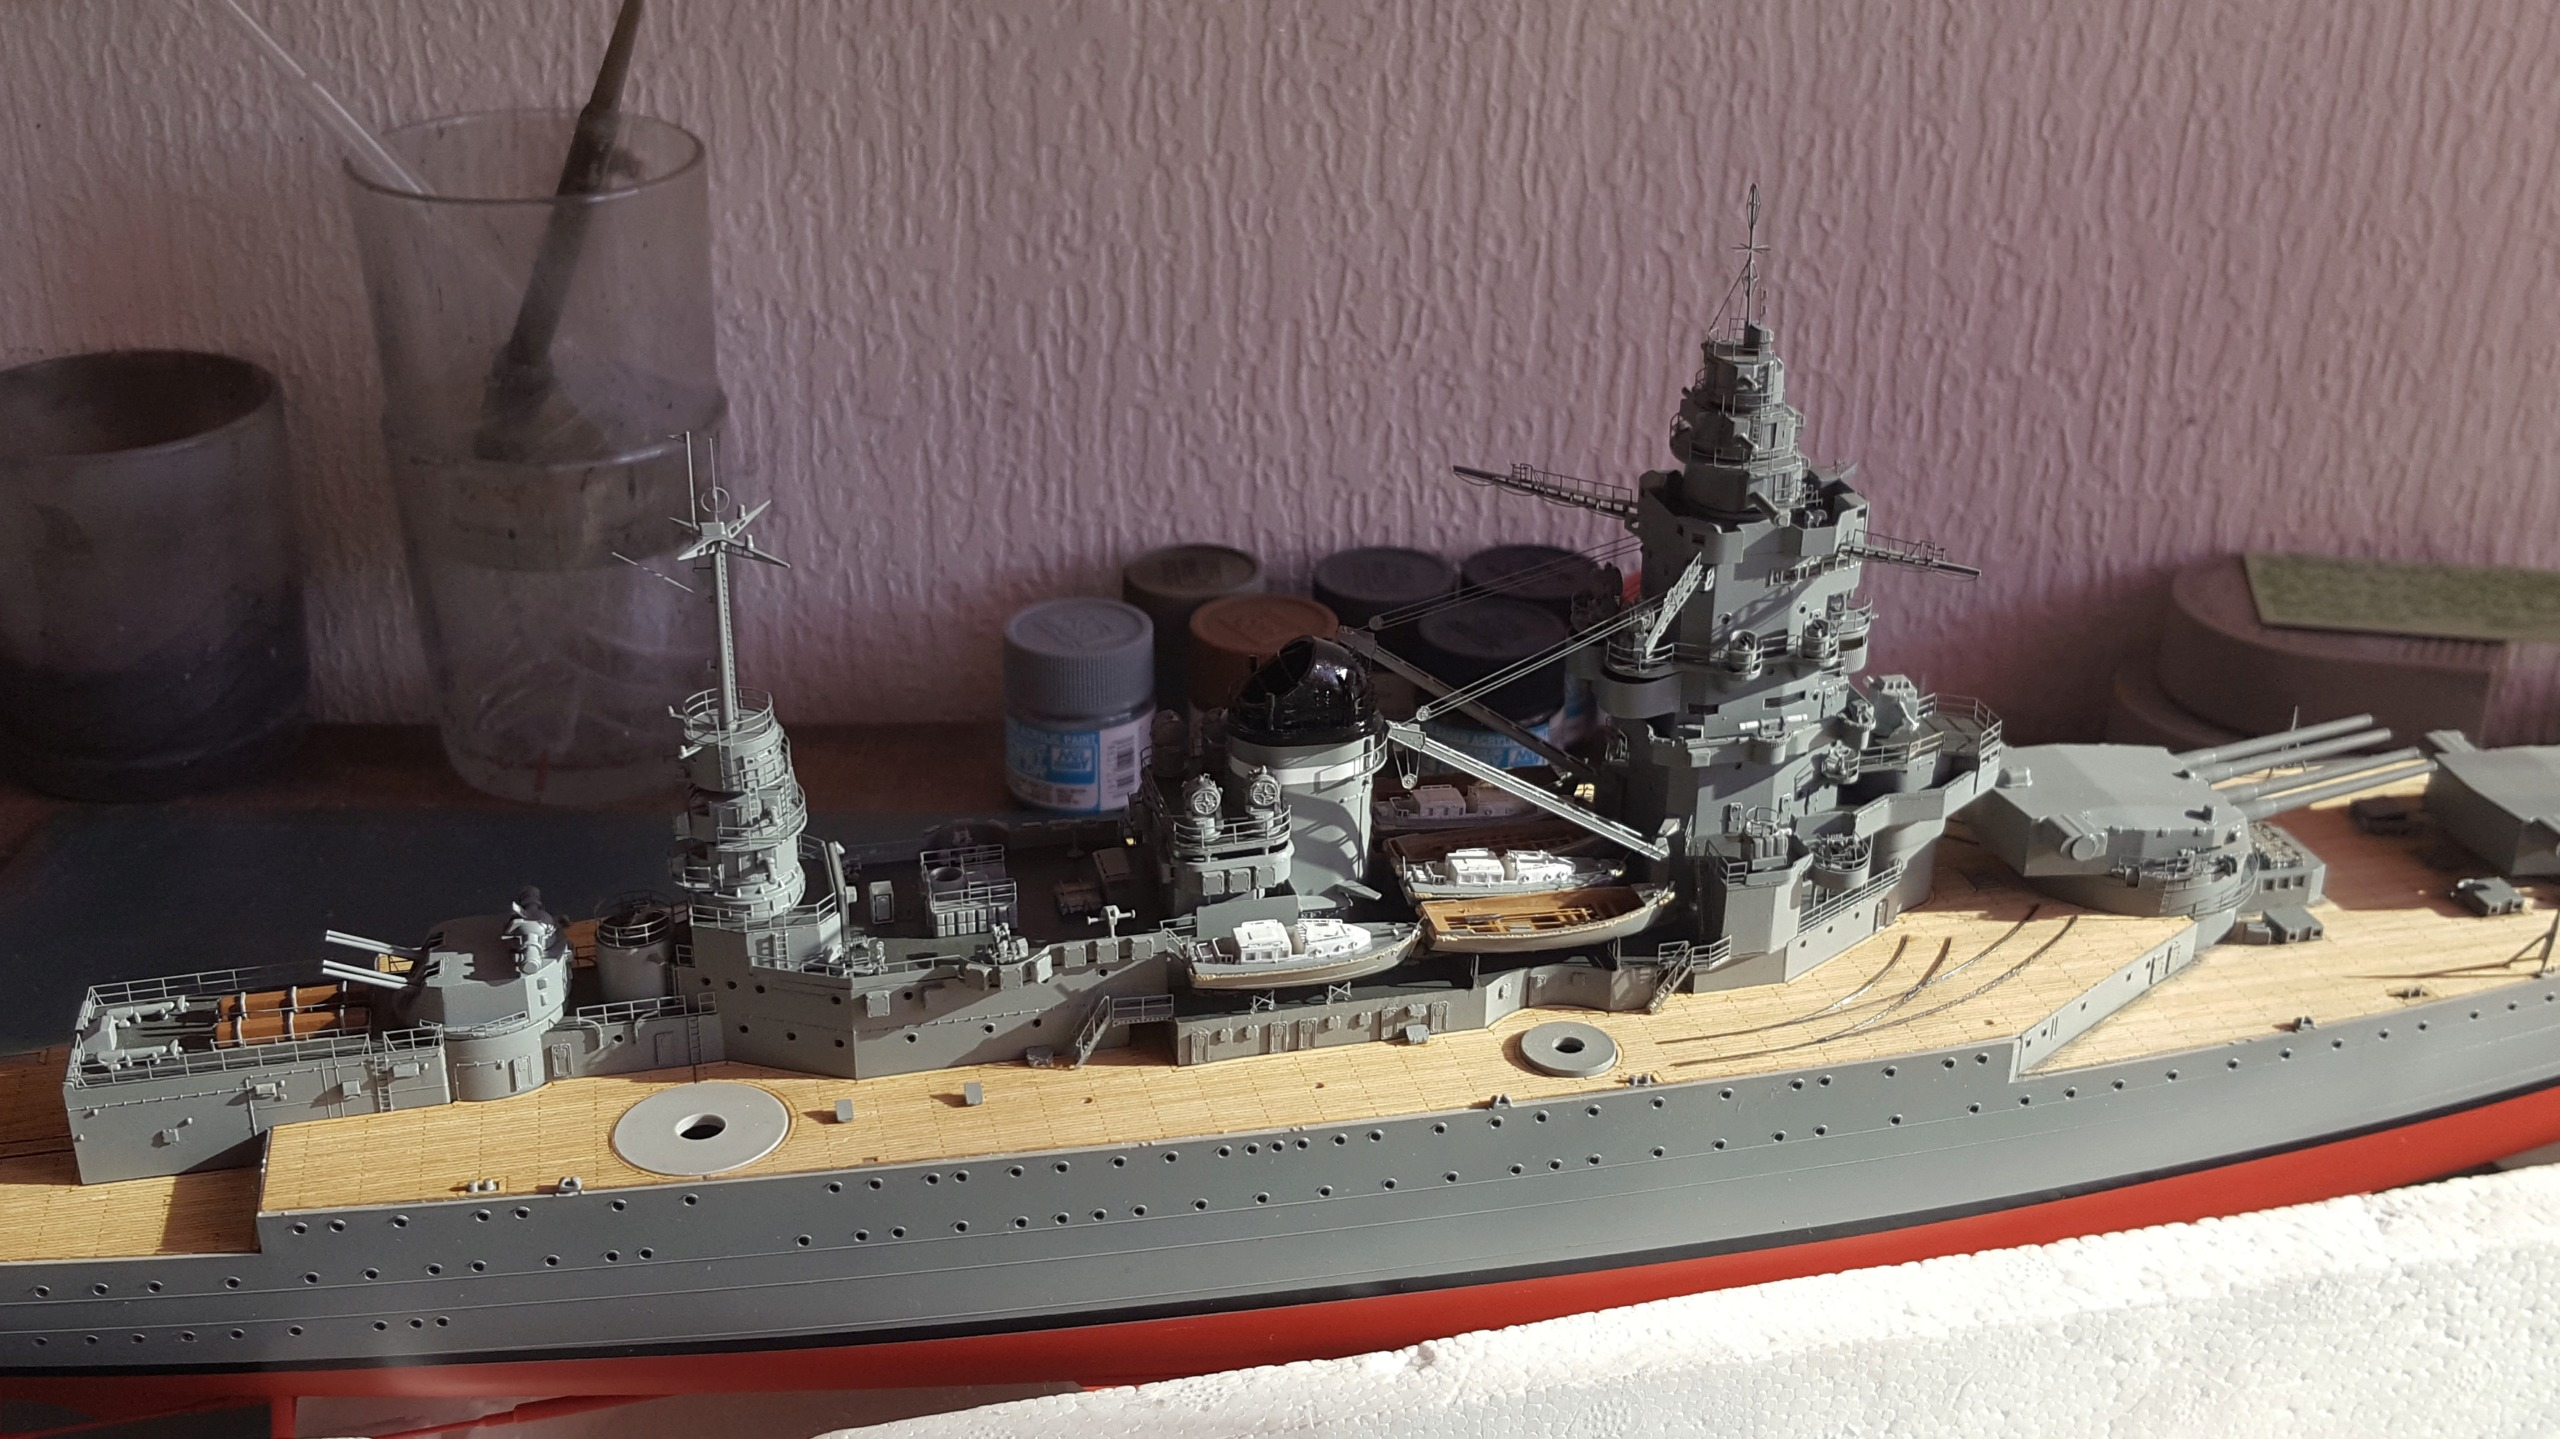 Dunkerque Hobby Boss au 1/350 + kit détaillage ShipYard. - Page 19 20180918